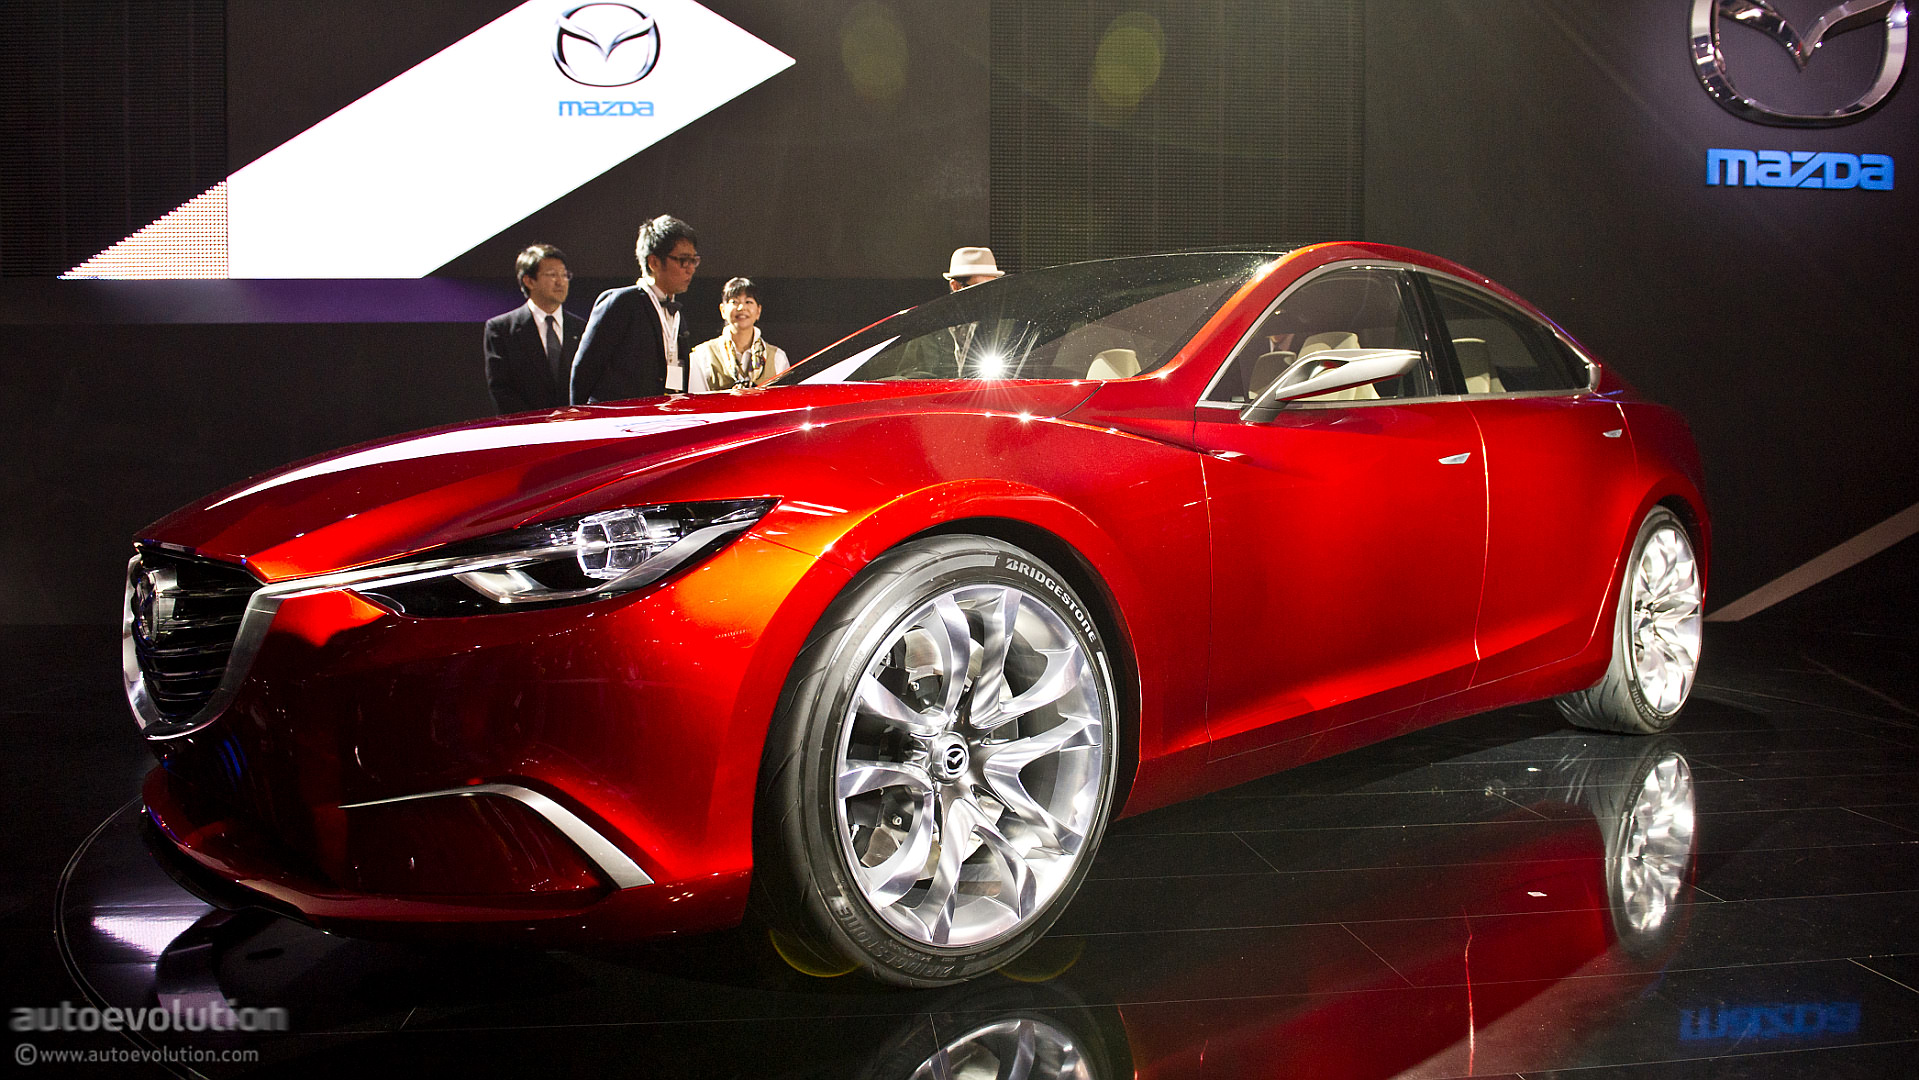 http://s1.cdn.autoevolution.com/images/news/gallery/2011-mazda-takeri-concept-coming-to-new-york_1.jpg